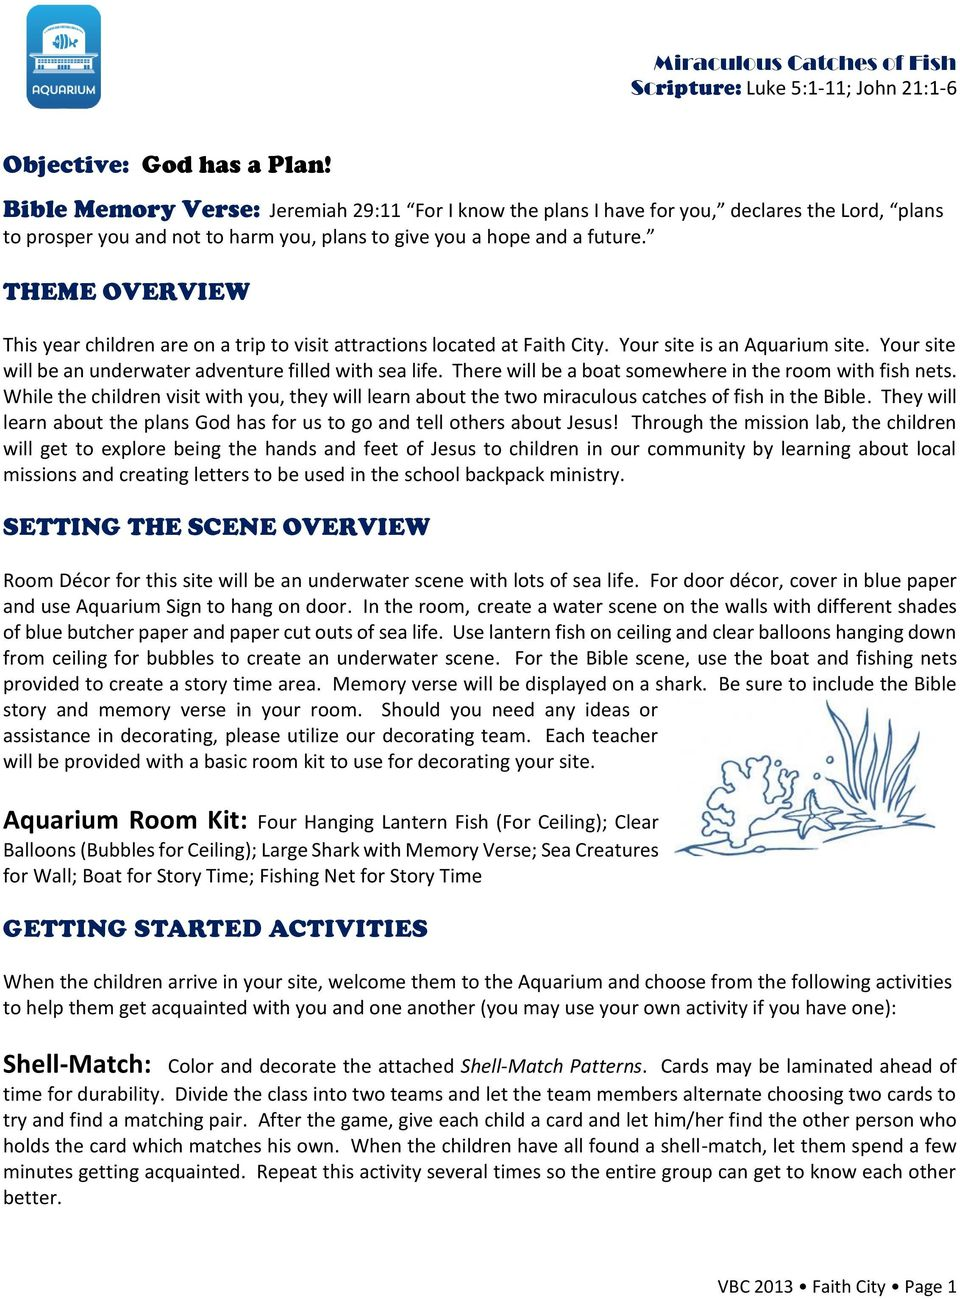 THEME OVERVIEW This year children are on a trip to visit attractions located at Faith City. Your site is an Aquarium site. Your site will be an underwater adventure filled with sea life.